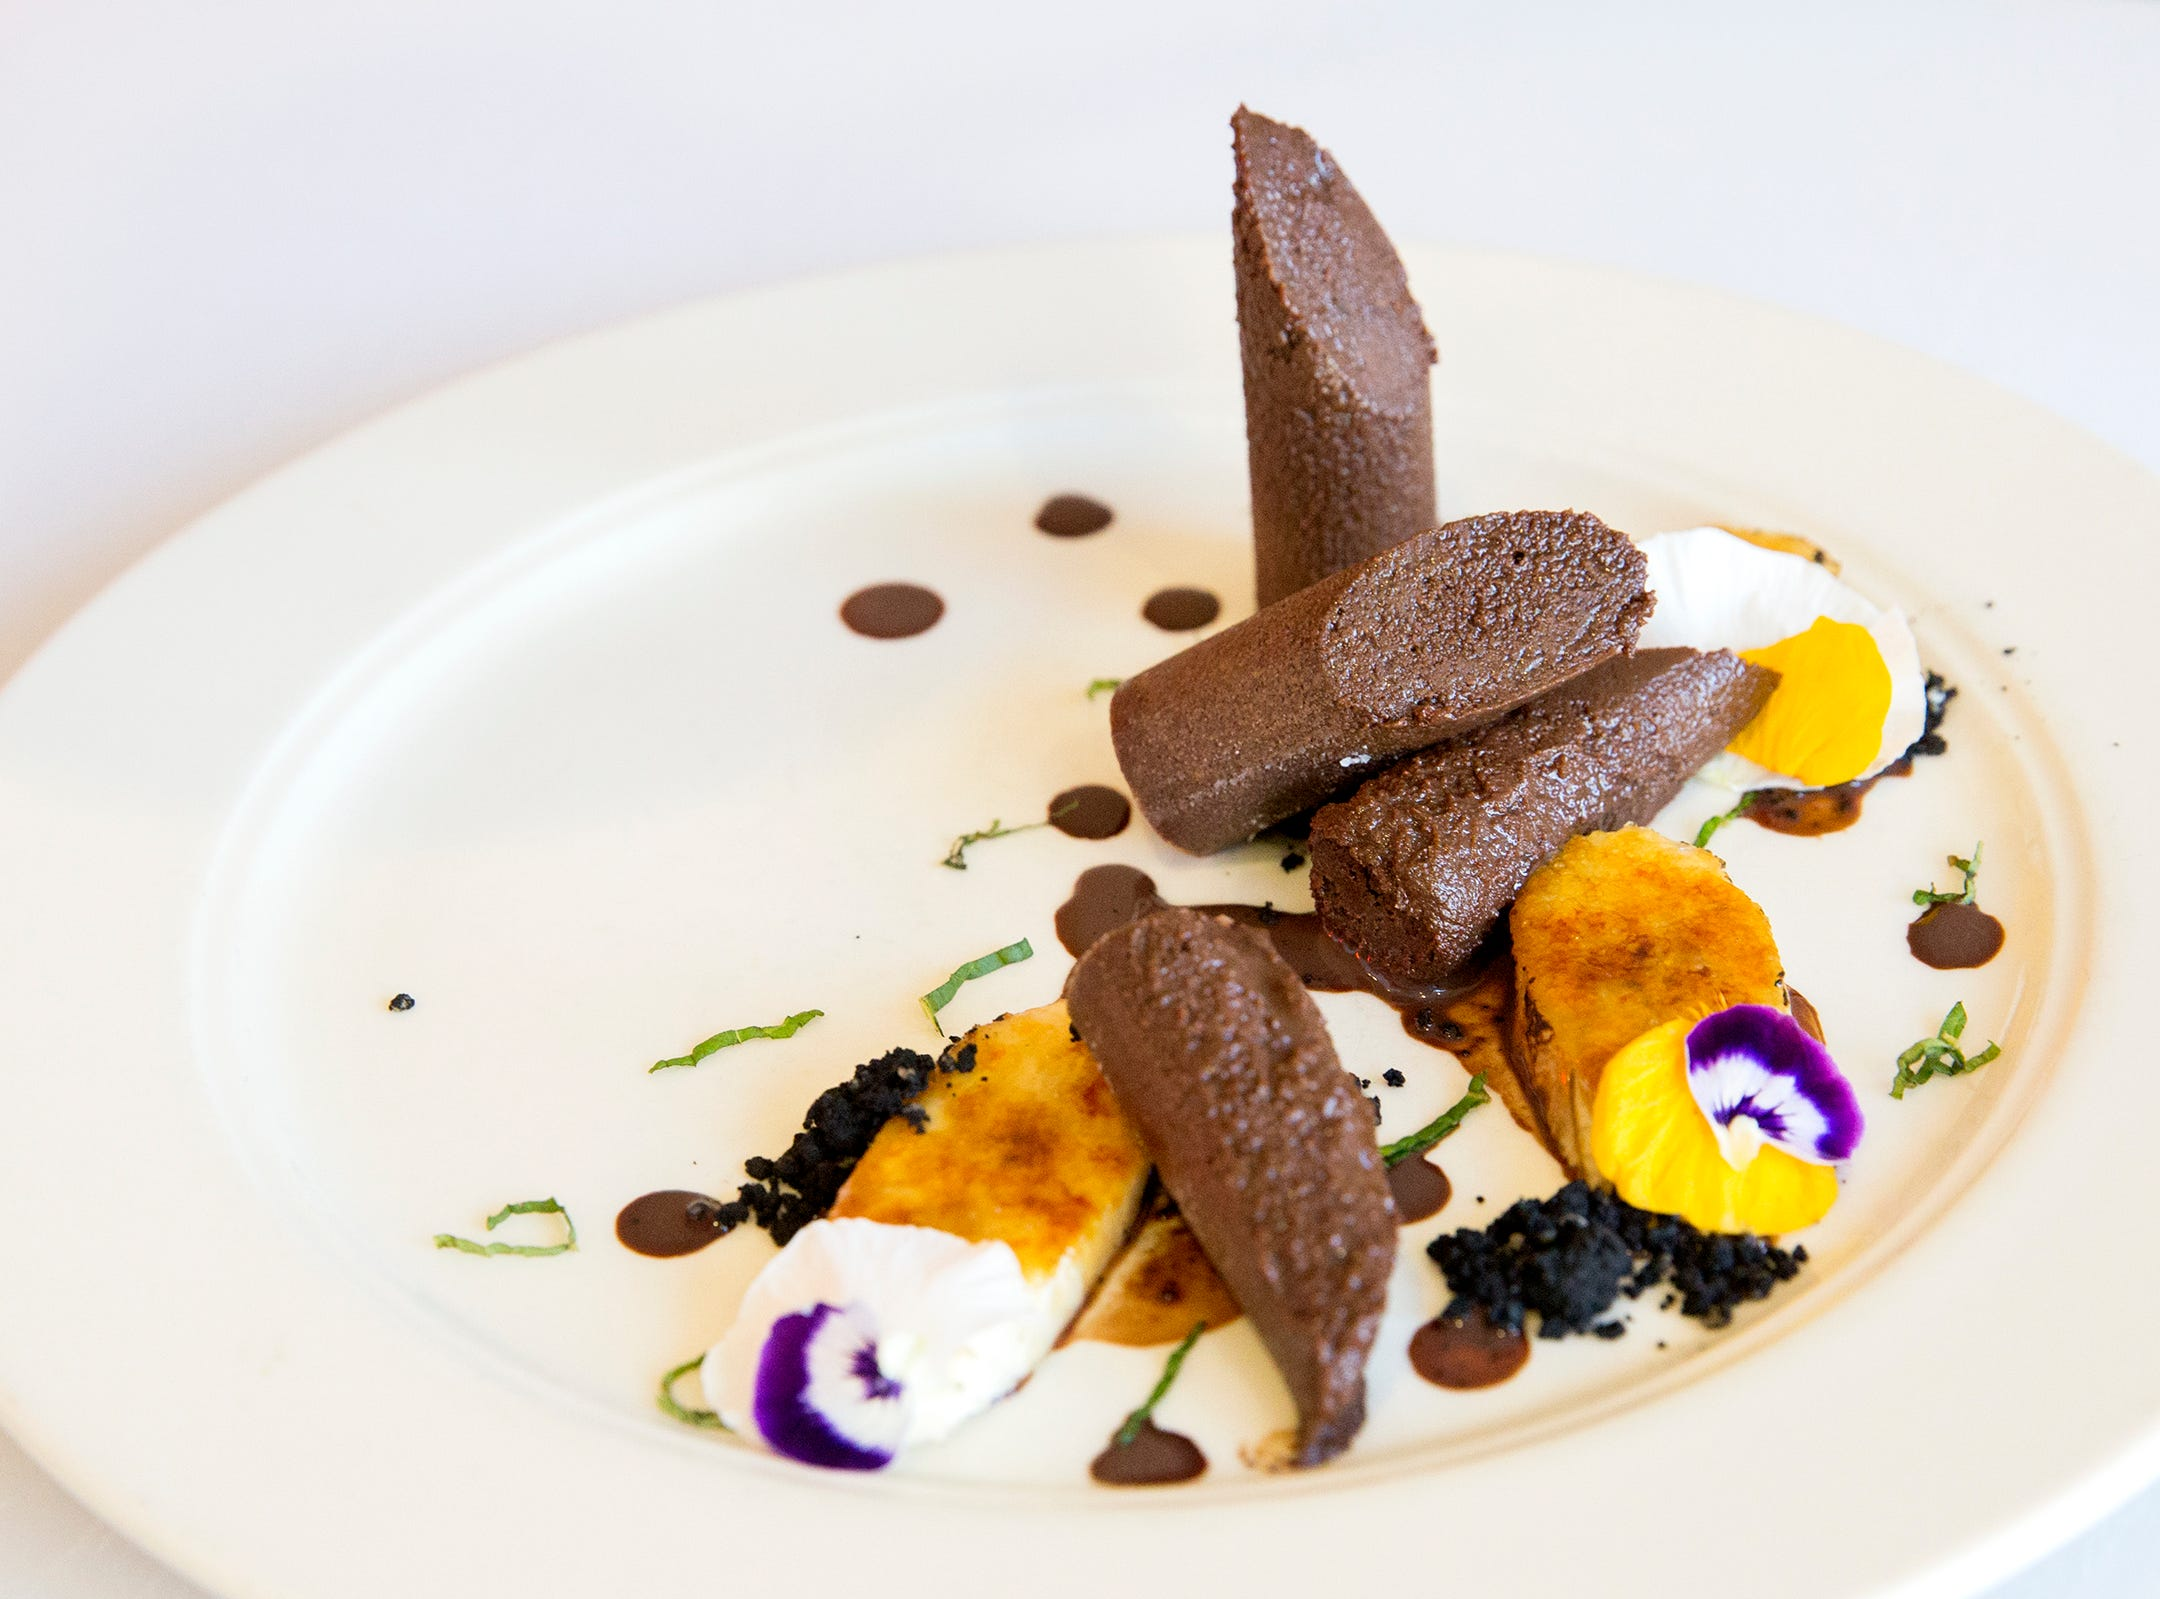 McMinville's Chocolate Flourless Cake dessert is served for the judges during the ORLAEF's ProStart Invitational, a statewide high school culinary competition, at the Salem Convention Center on March 18, 2019.